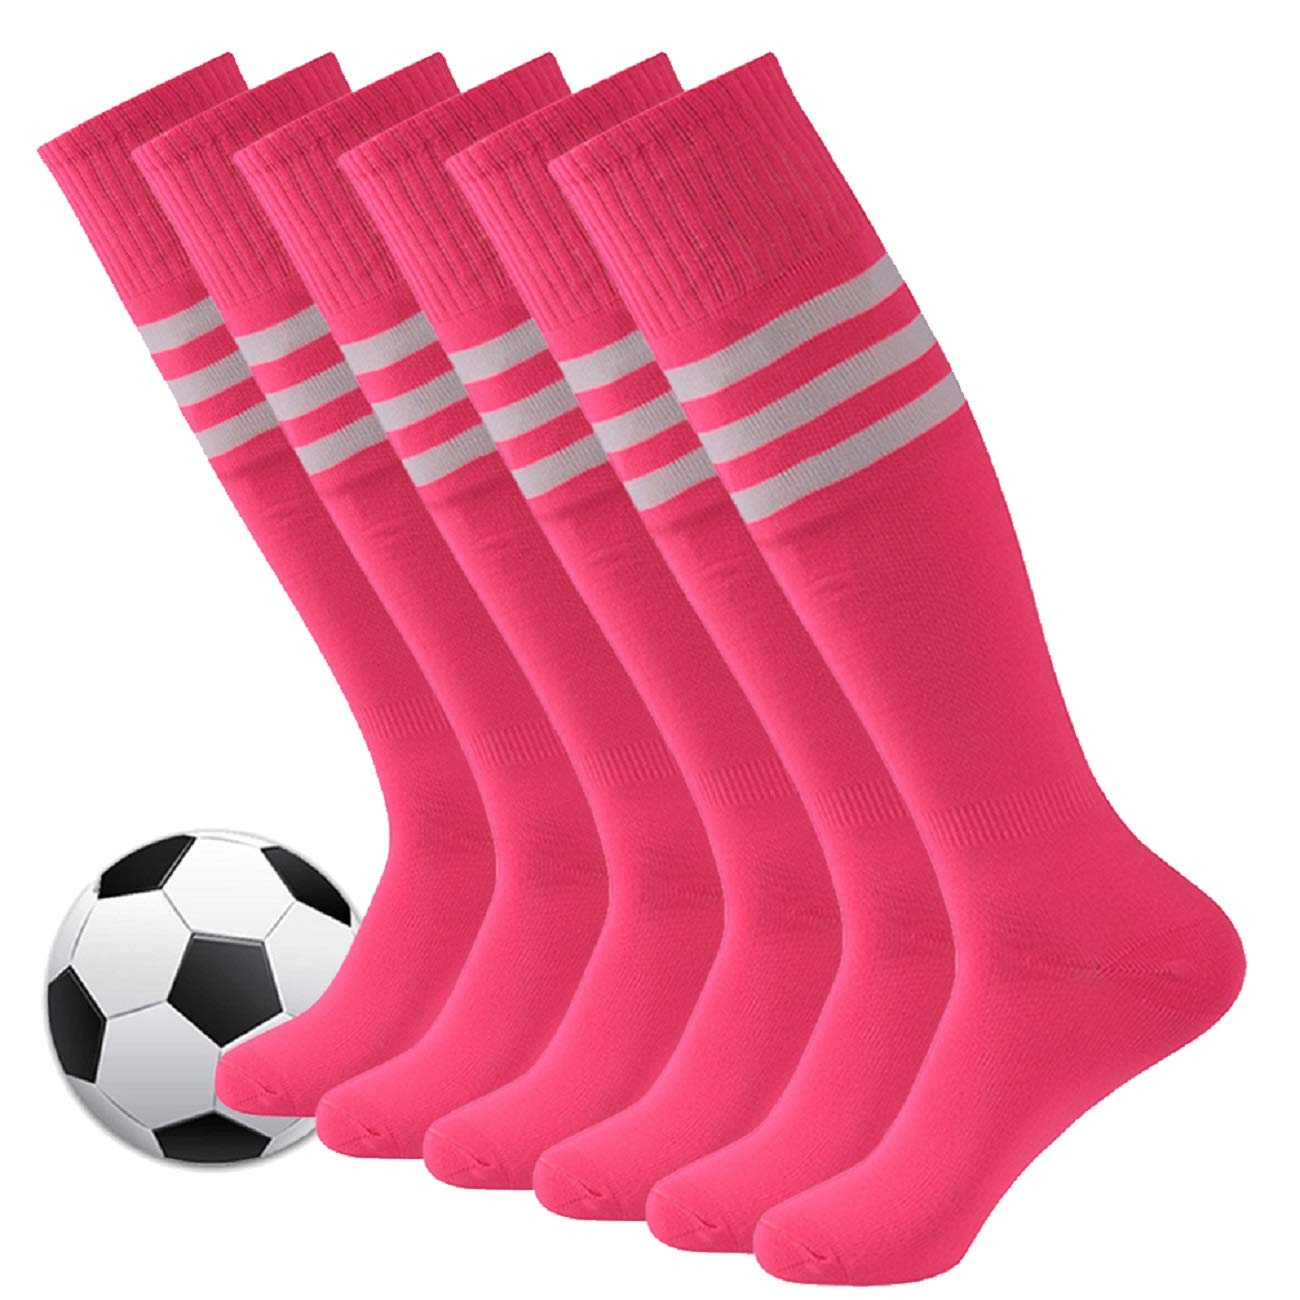 Pink Soccer Socks,Fasoar Mens Womens Long Tube Knee High Team Sports Football Socks 6 Pack Rose Pink White Stripe by Fasoar